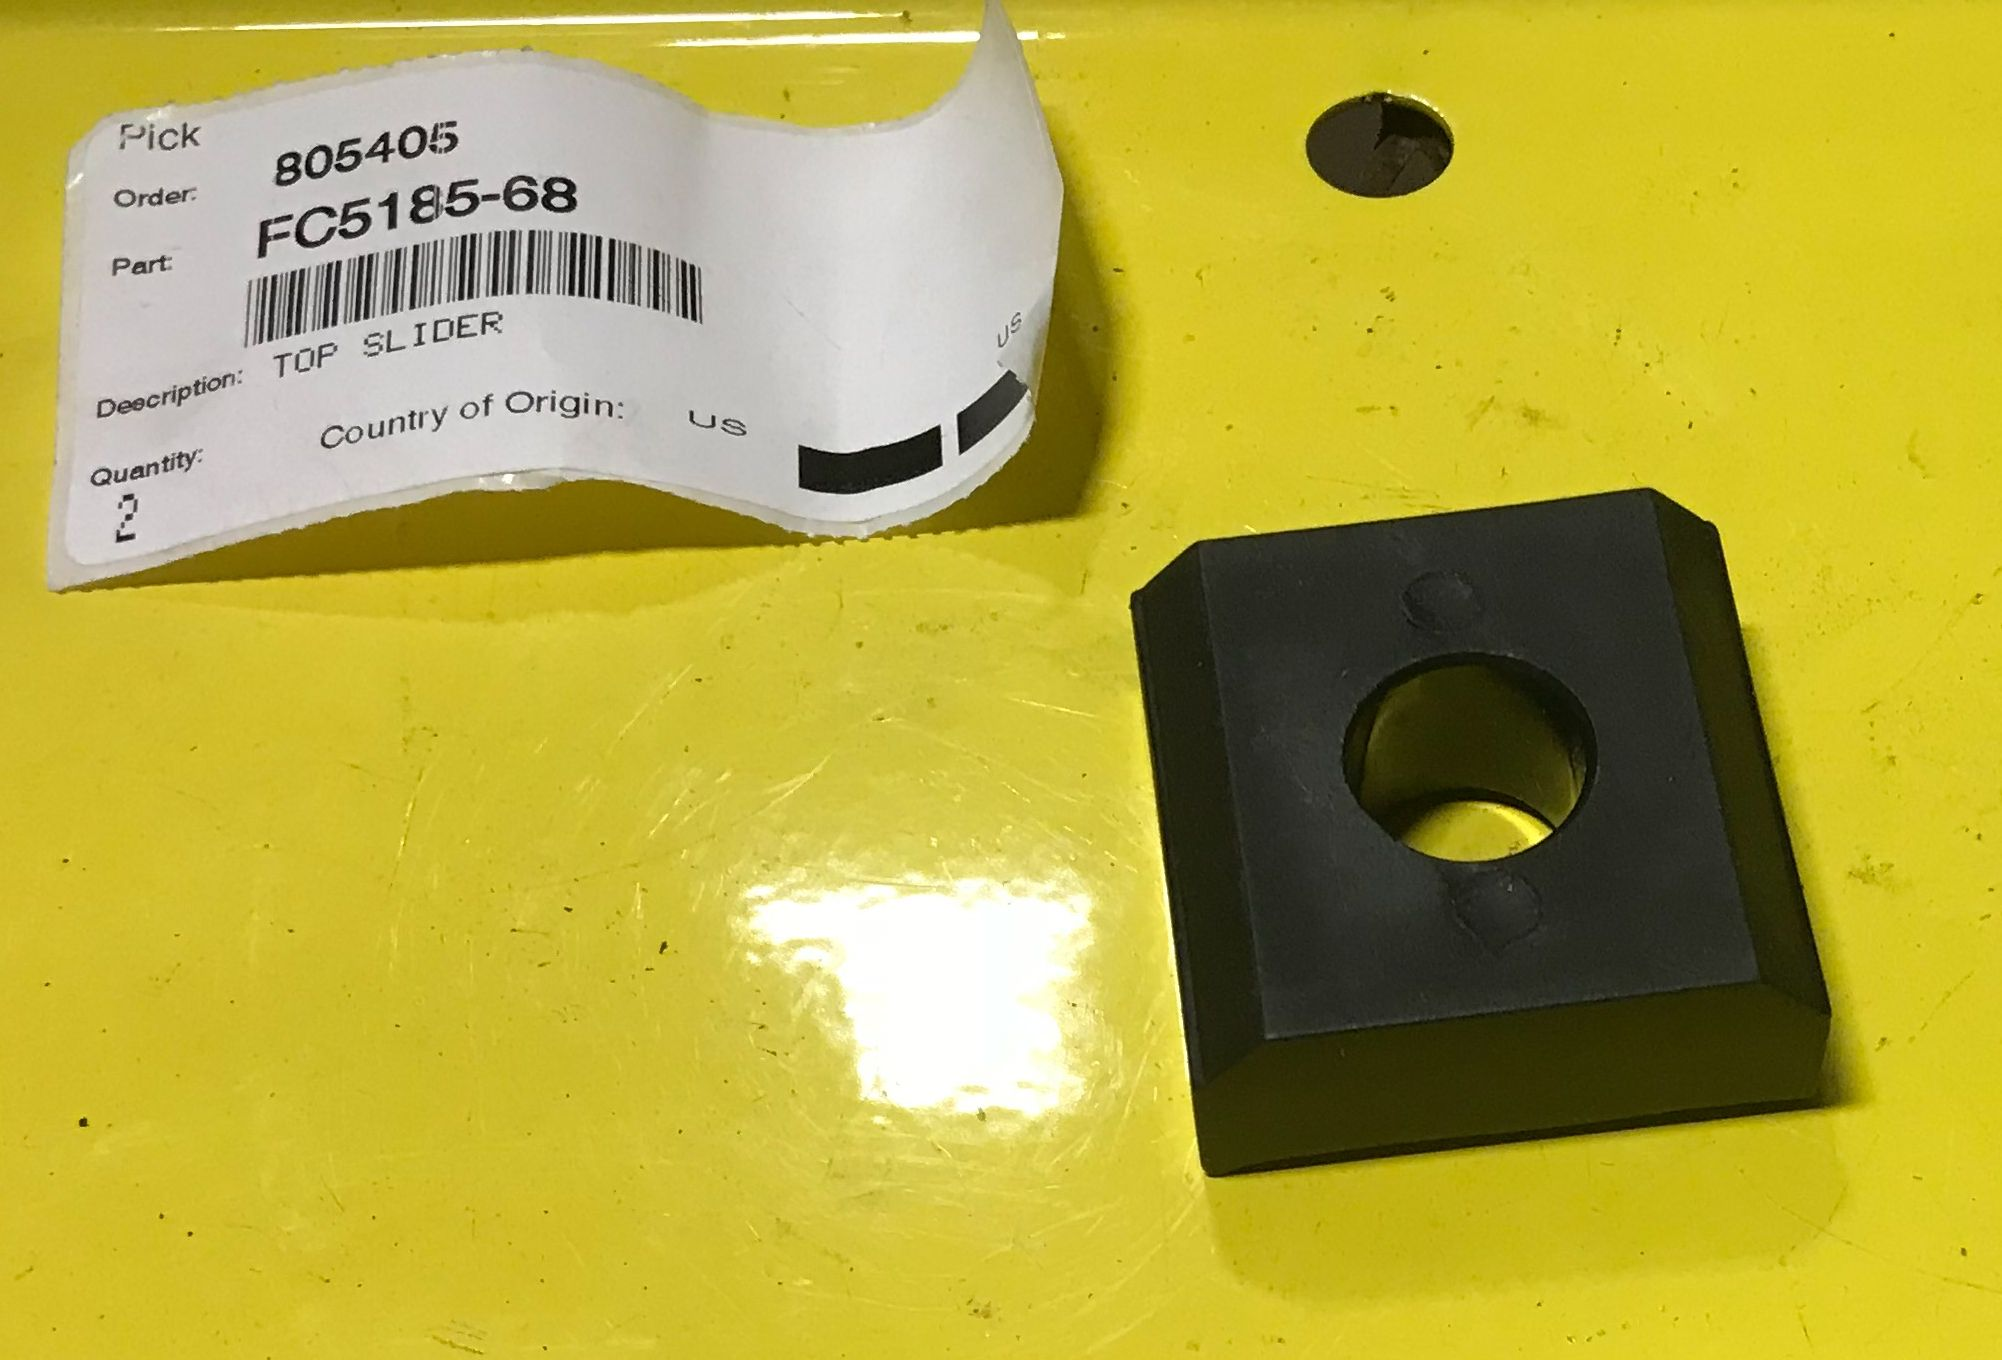 Rotary Lift Parts - R-FC5185-68